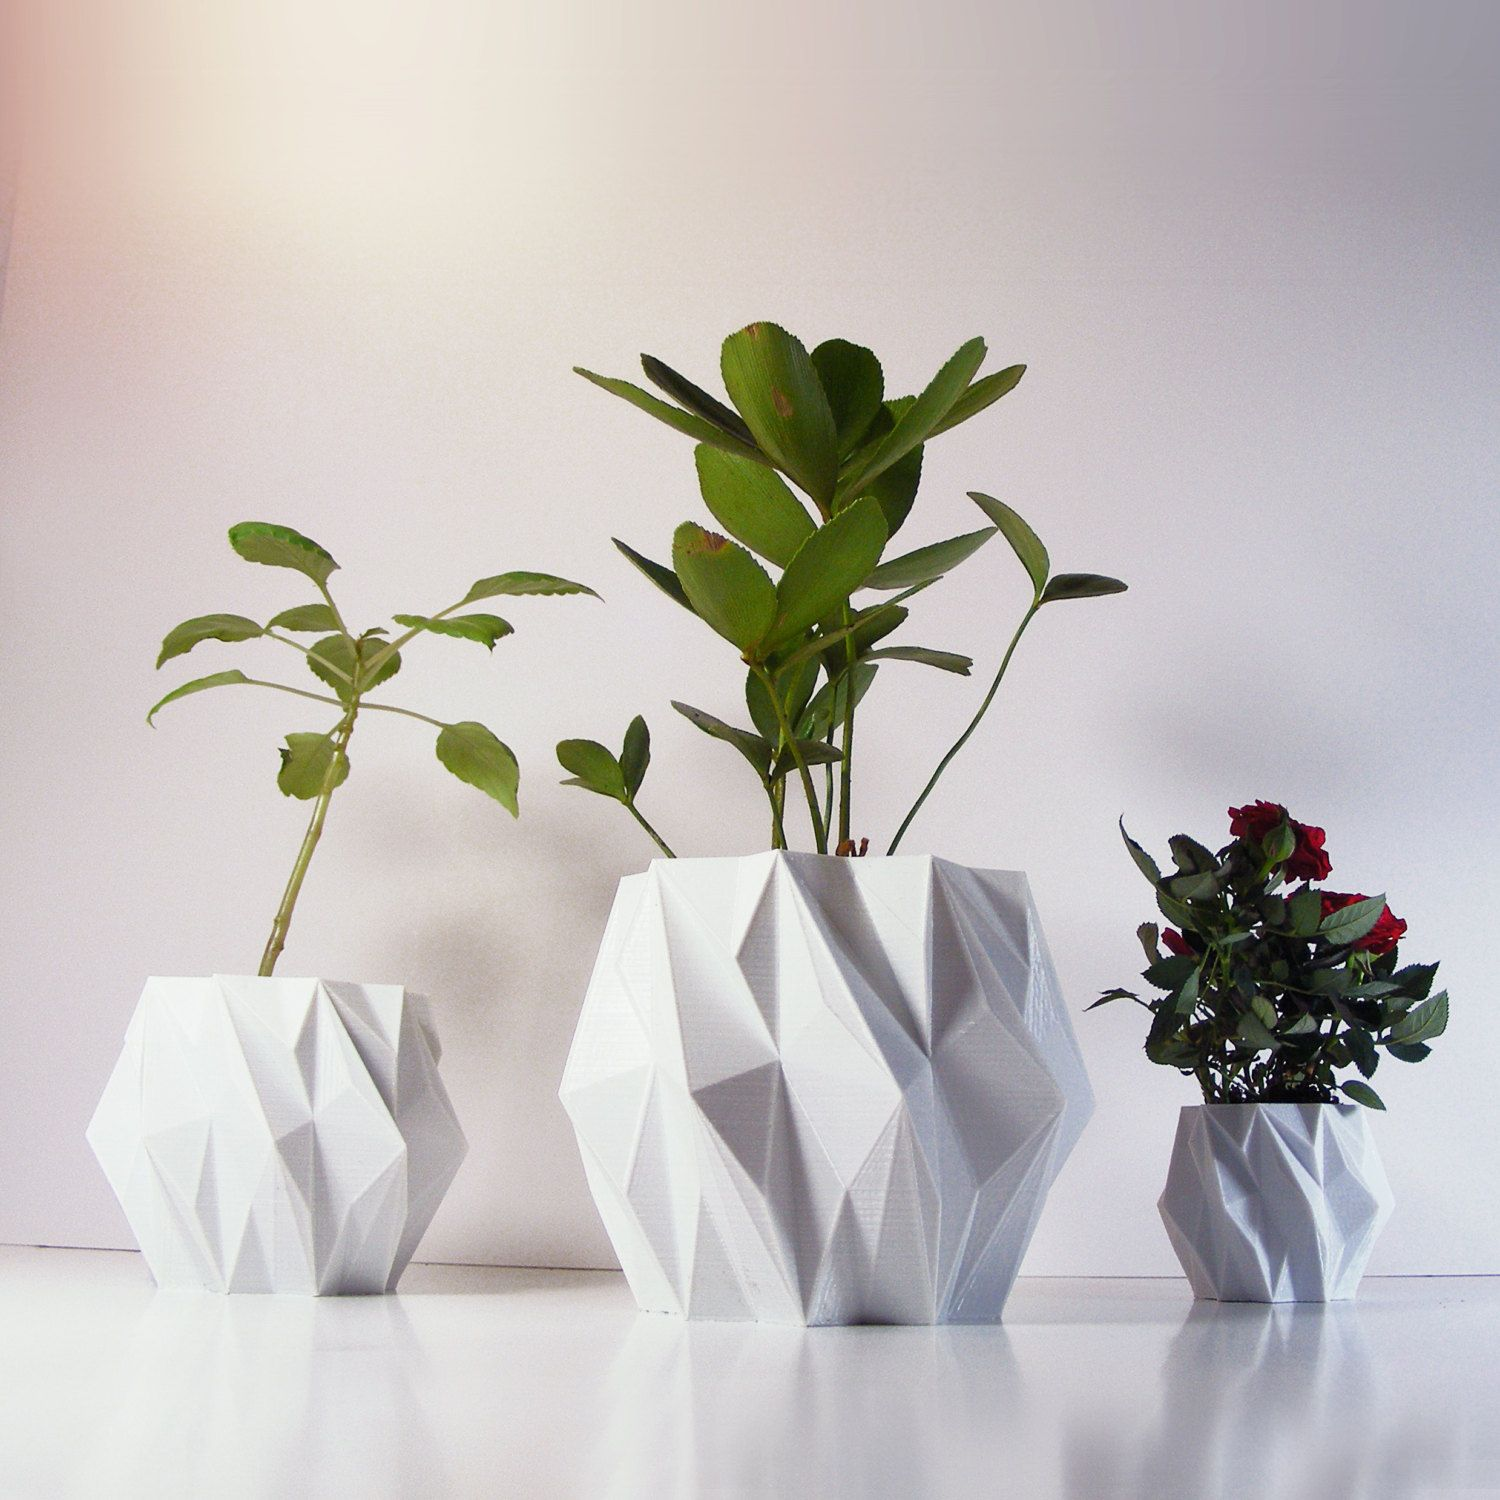 Hanging Plant 3d Print Google Search Indoor Flower Pots Flower Pot Design Indoor Plant Pots